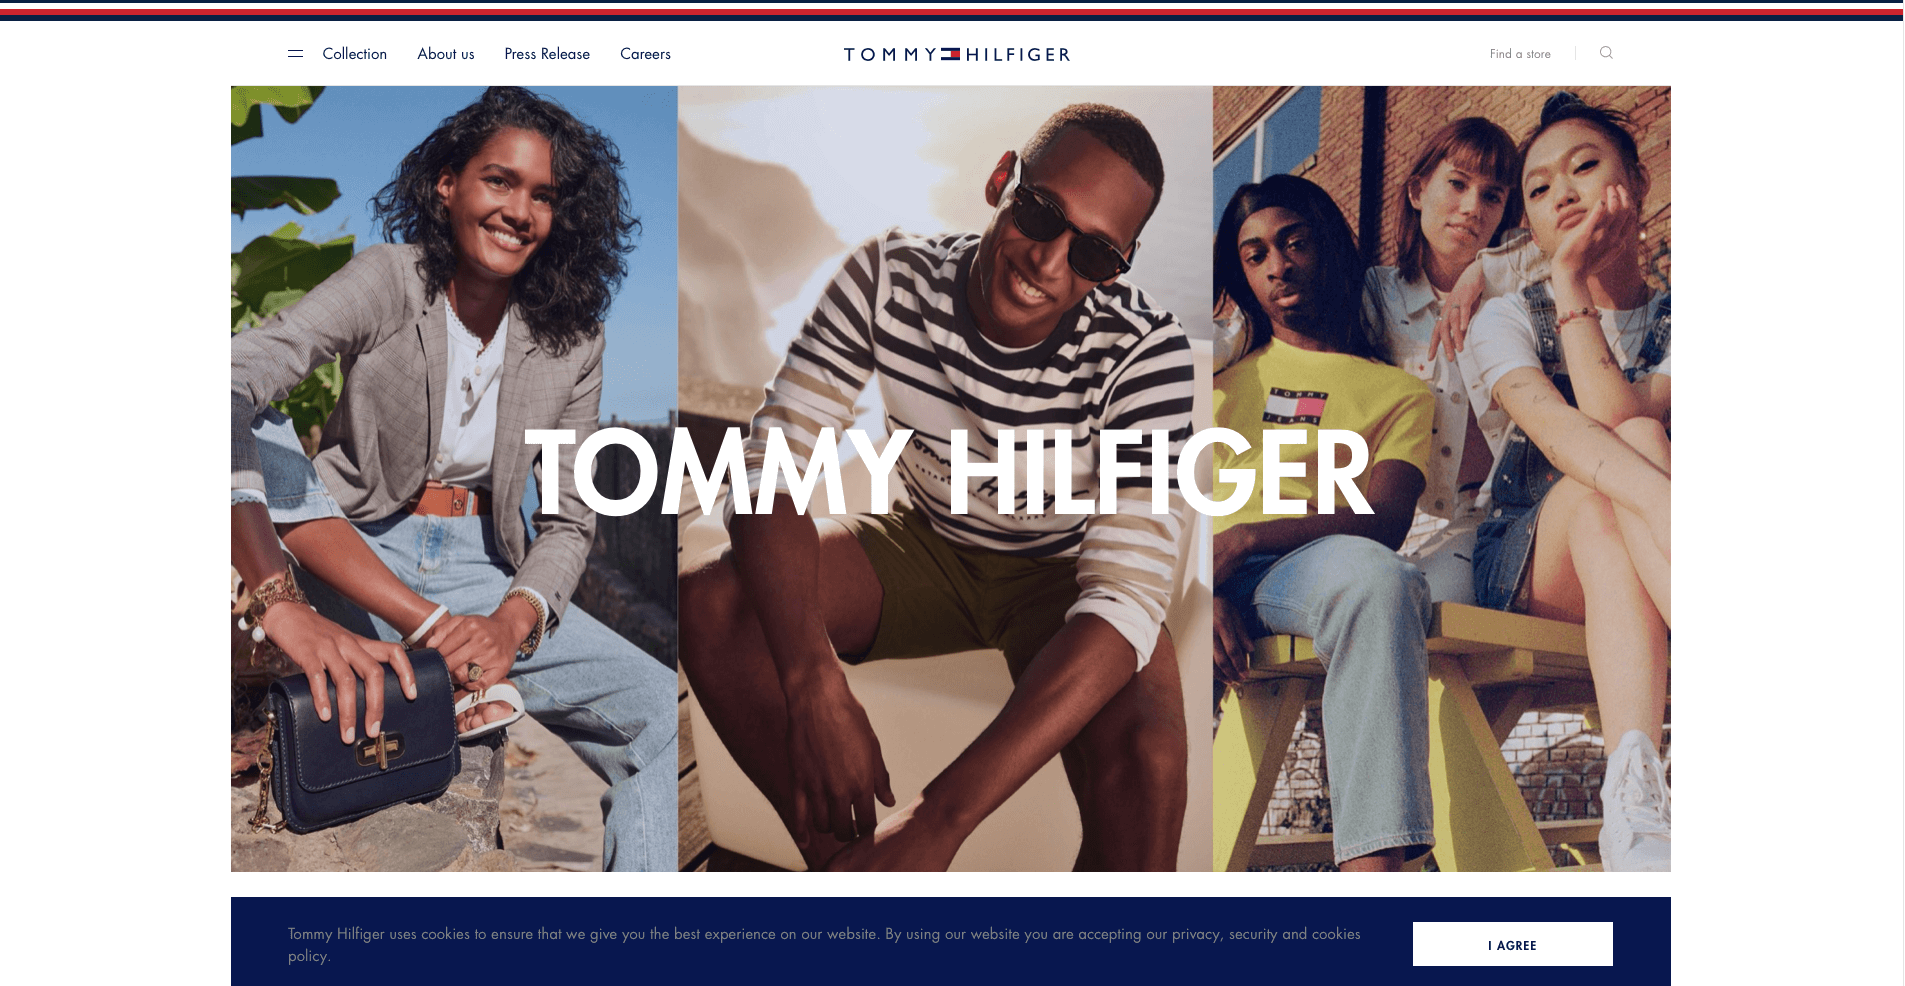 Tommy Hilfiger website